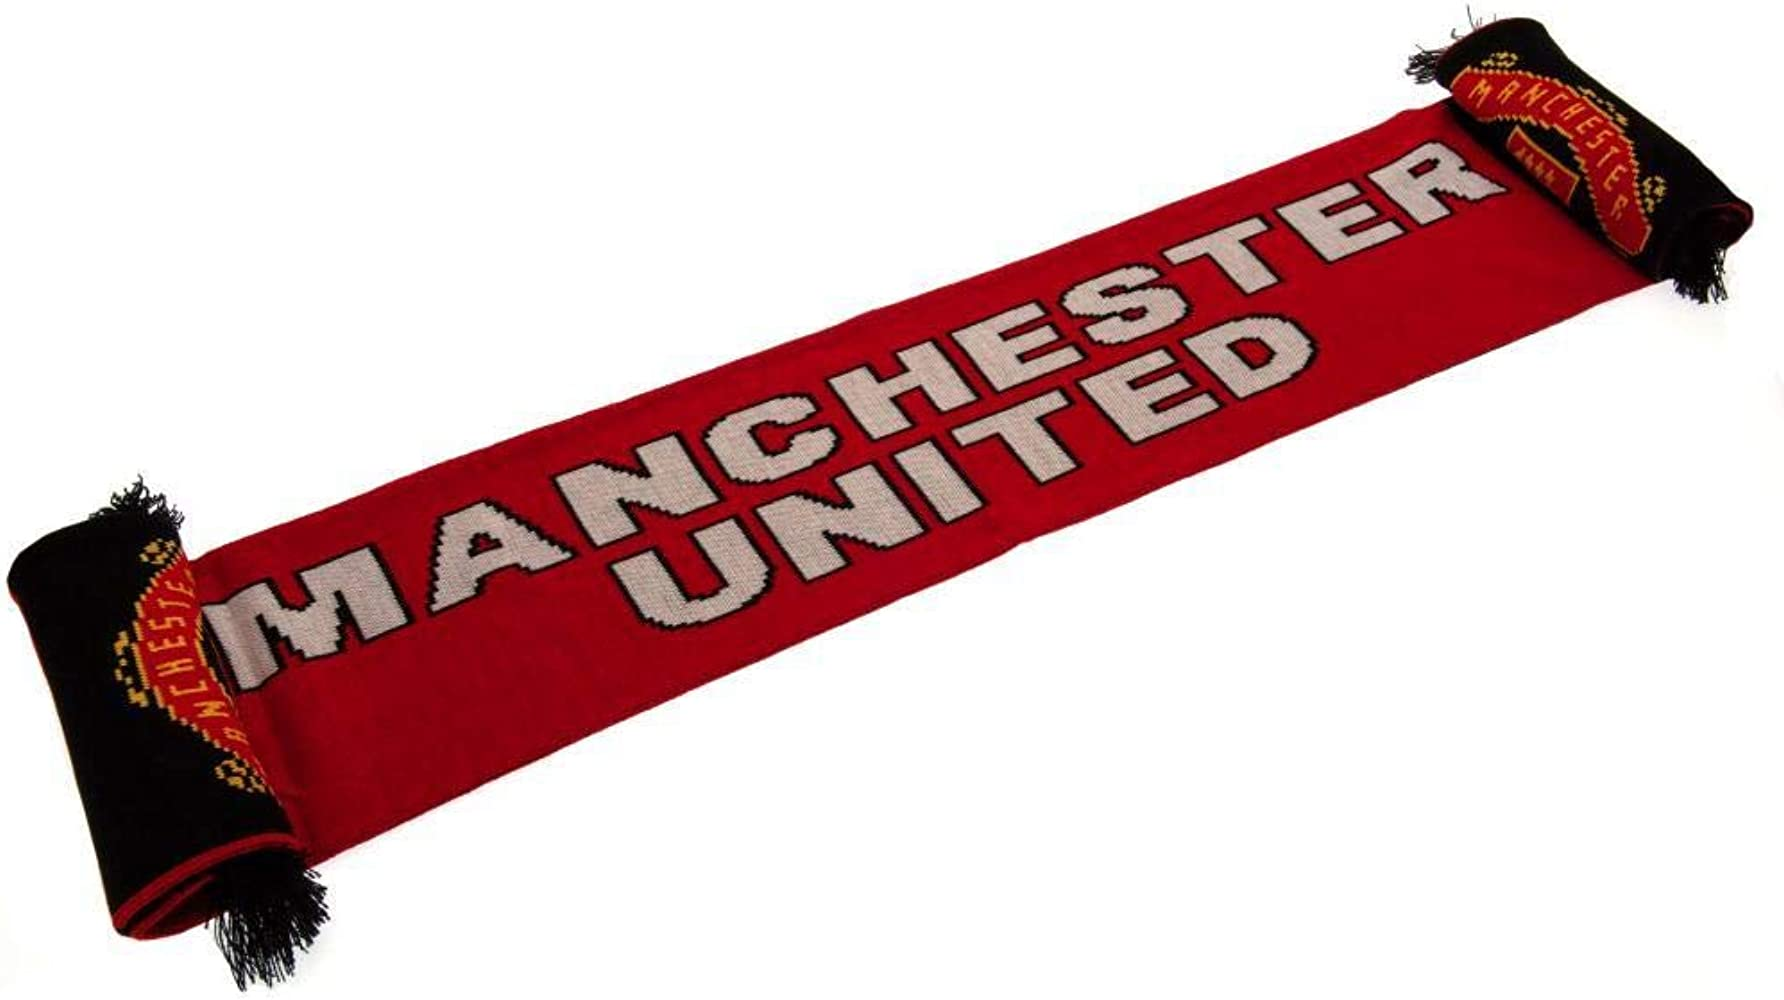 Manchester United FC Official Soccer Gift Glory Glory Man Utd Stripe Scarf